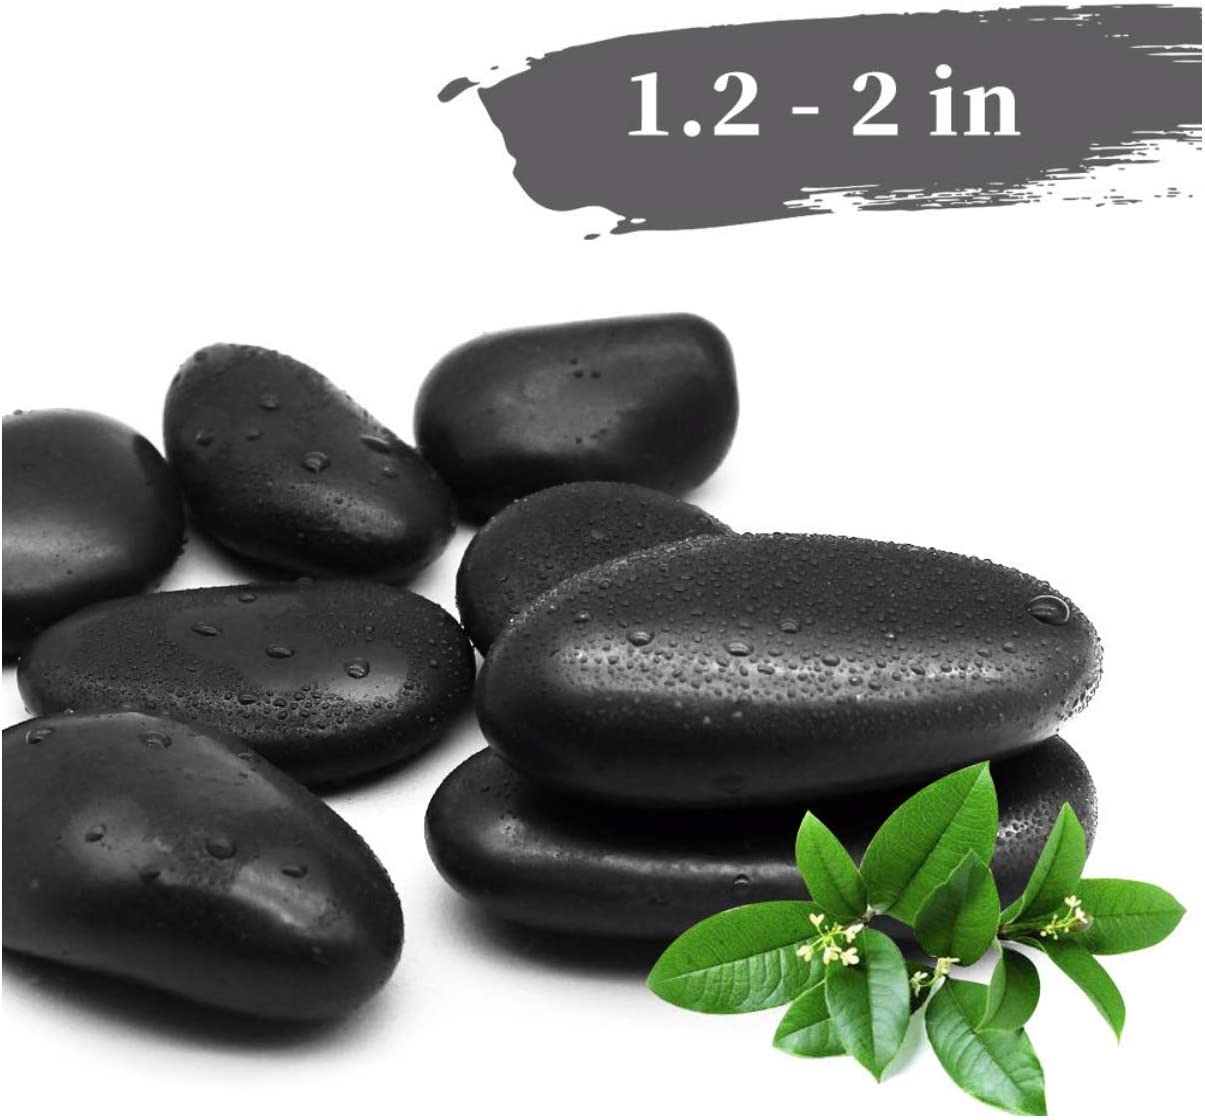 Amazon Com 6 Lbs Black Large Rocks Accents Plants Arts Craft Outside Big Black Rocks Colored Vase Filling Decorative Garden White Vase Filling Black Stones Pebbles Glass Gems Fish Tanks Decor Aquariums Home